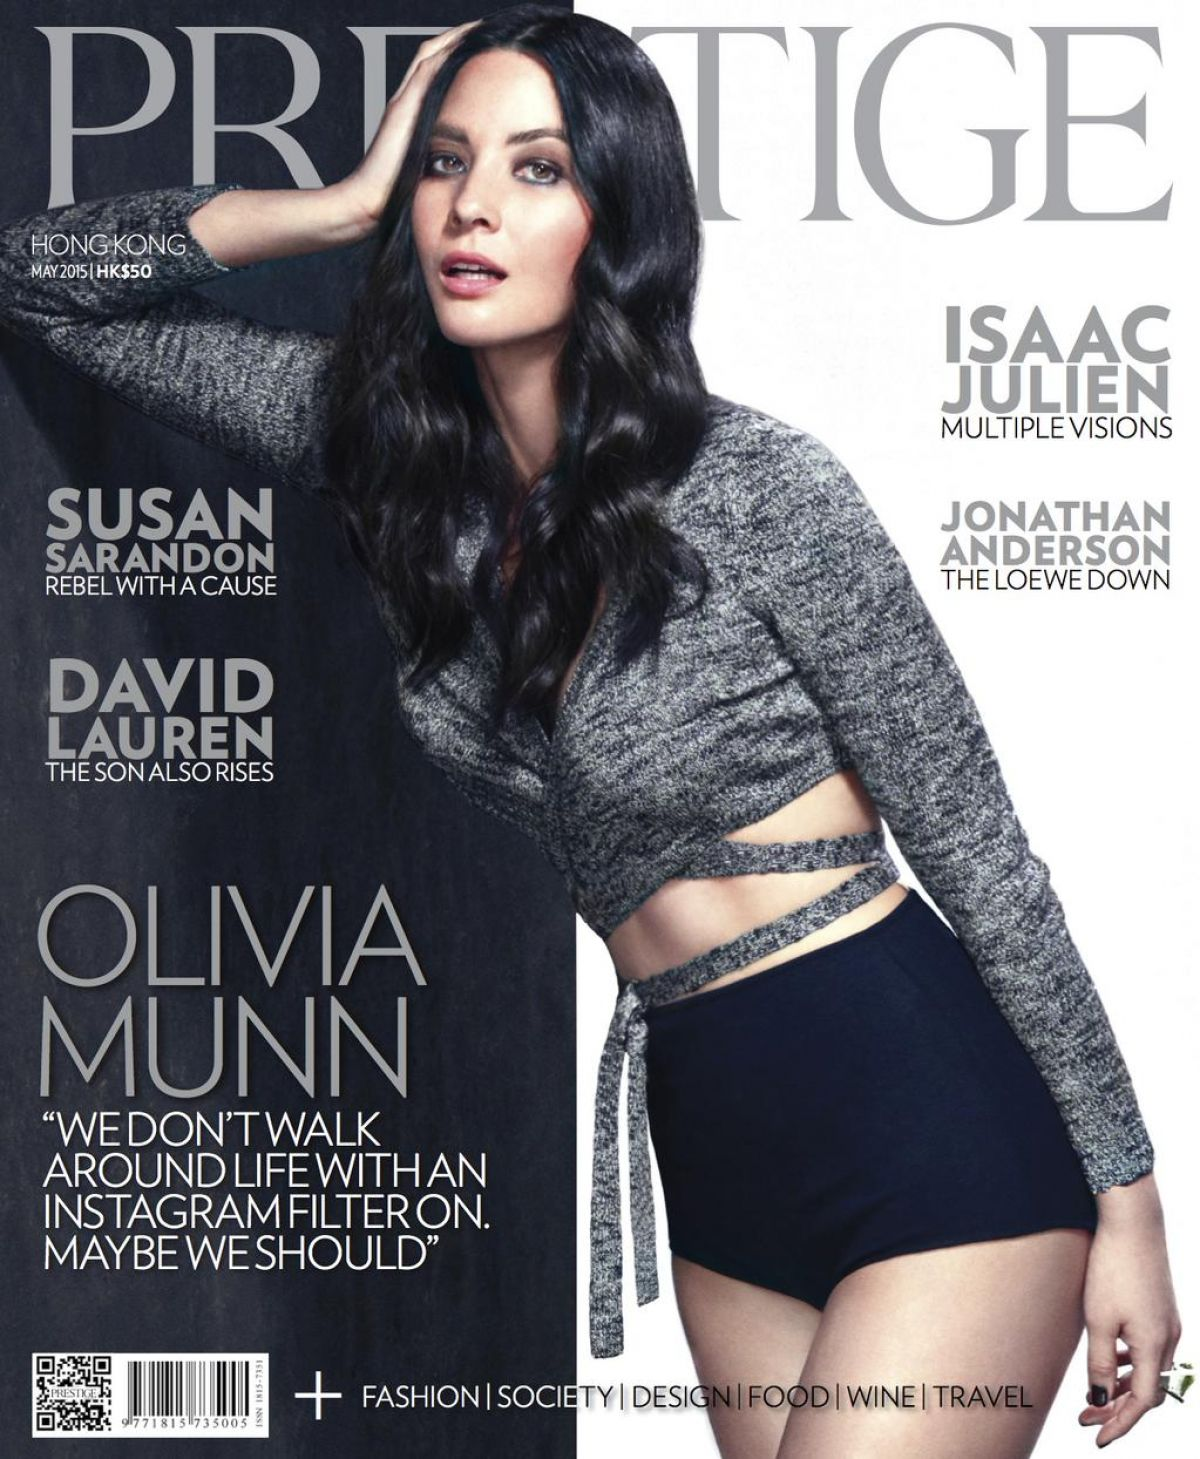 OLIVIA MUNN in Prestige Magazine, Hong Kong May 2015 Issue